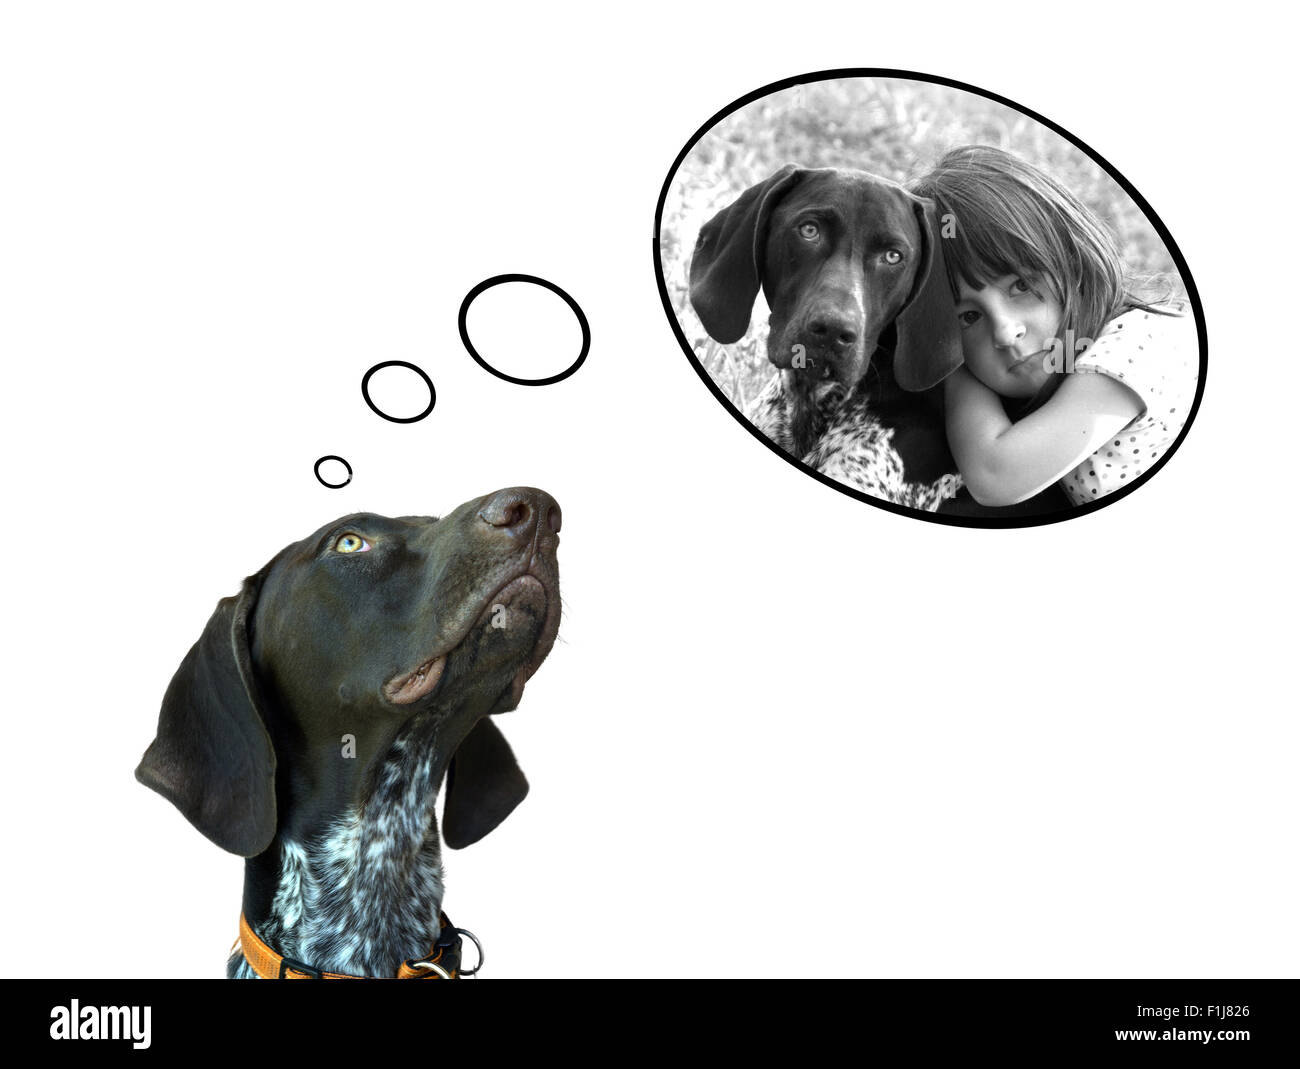 Conceptual image of german short hair pointer dreaming about the fun with his friend - Stock Image